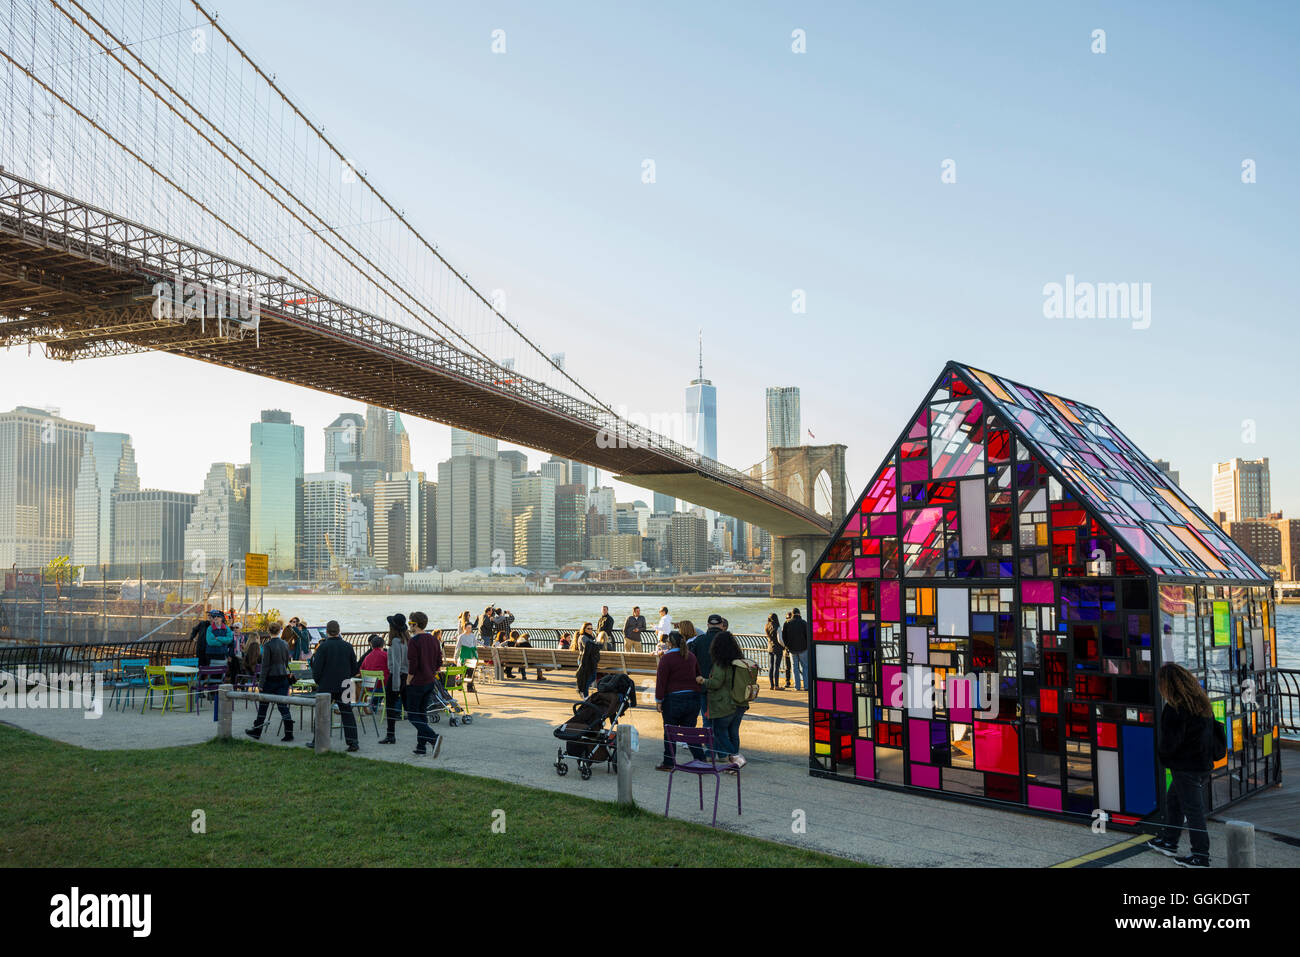 Buntes Glashaus, Fulton Ferry State Park, Dumbo, Brooklyn, New York, USA - Stock Image